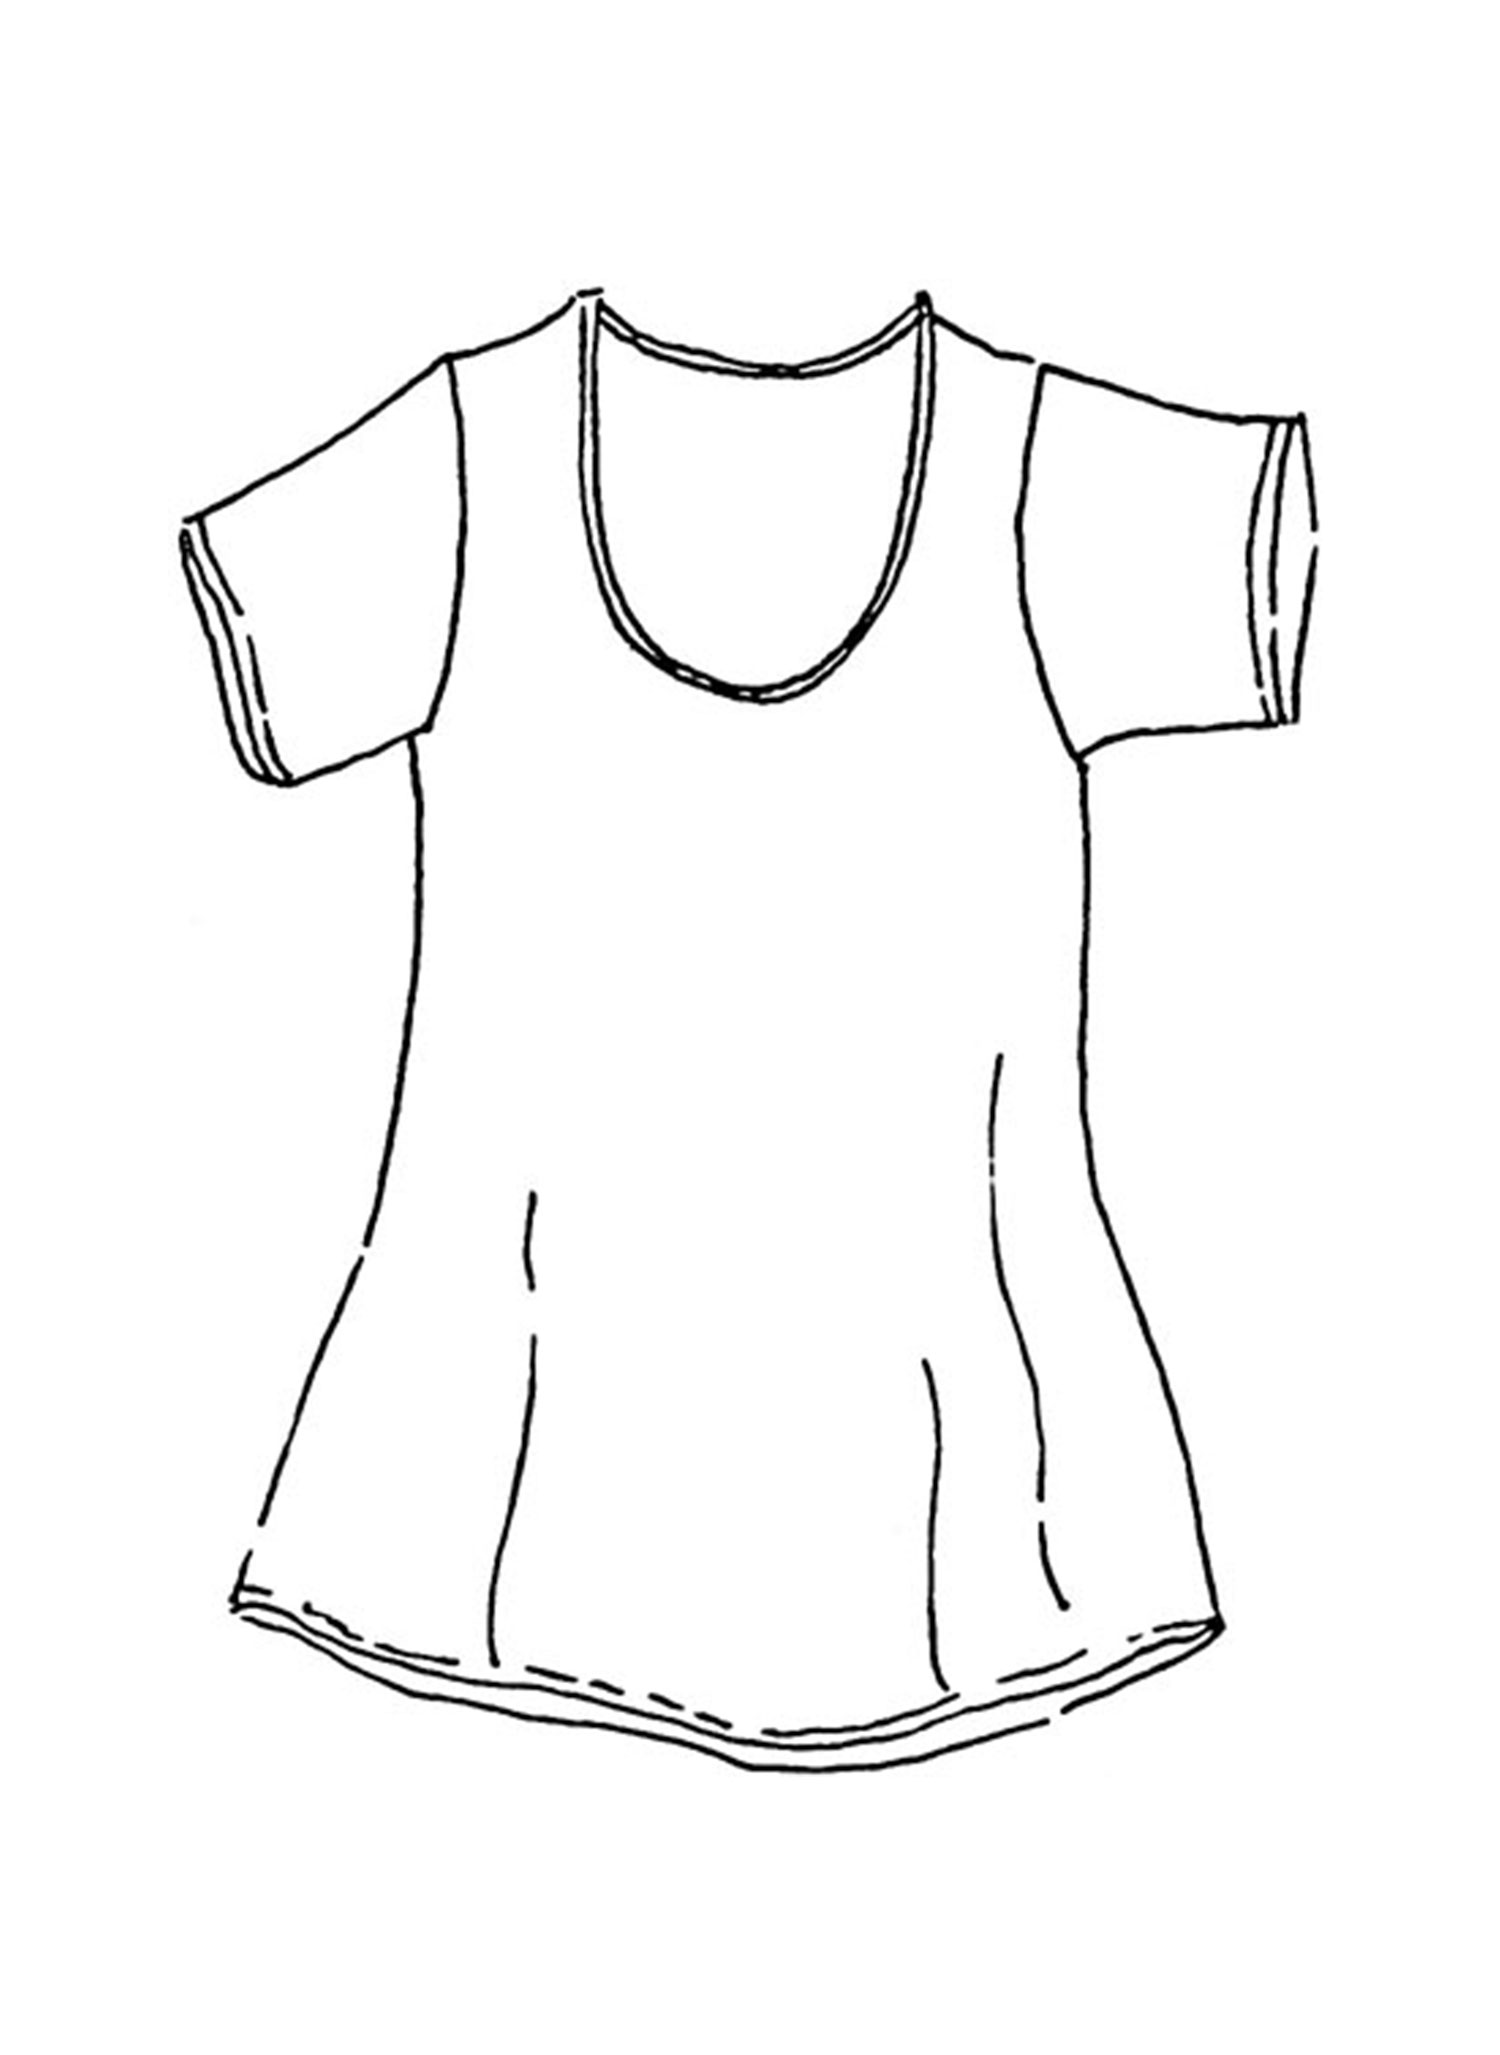 Tunic Tee sketch image